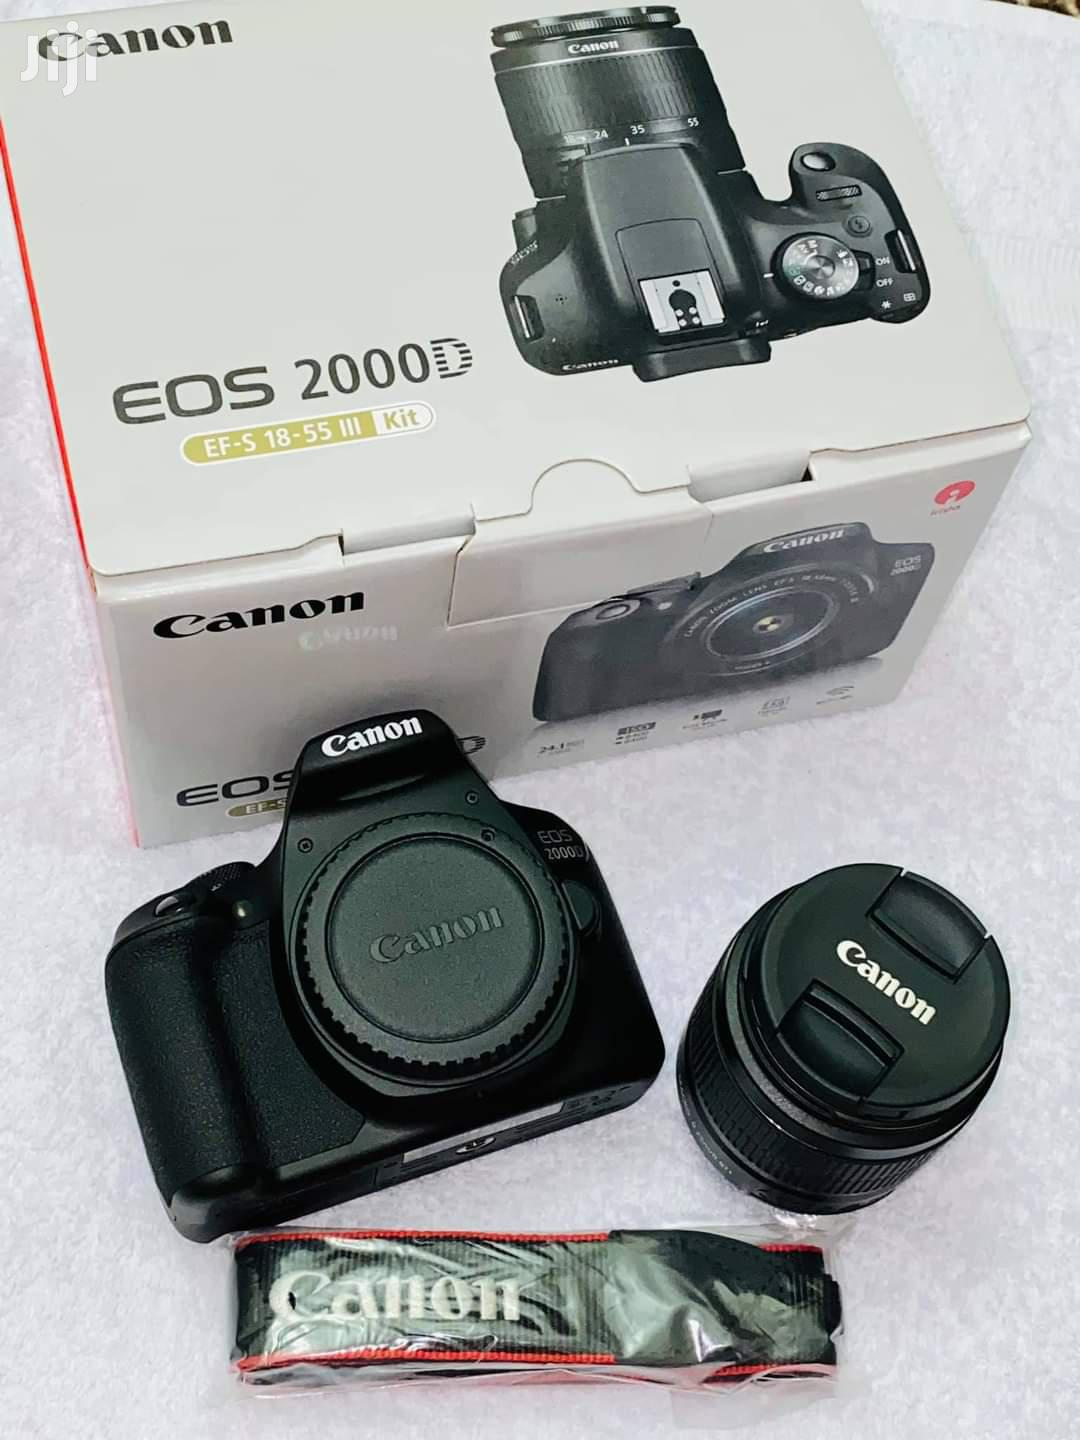 Canon EOS 2000D DSLR Camera With 18-55mm Lens 24.1mp Aps | Photo & Video Cameras for sale in Tudor, Mombasa, Kenya